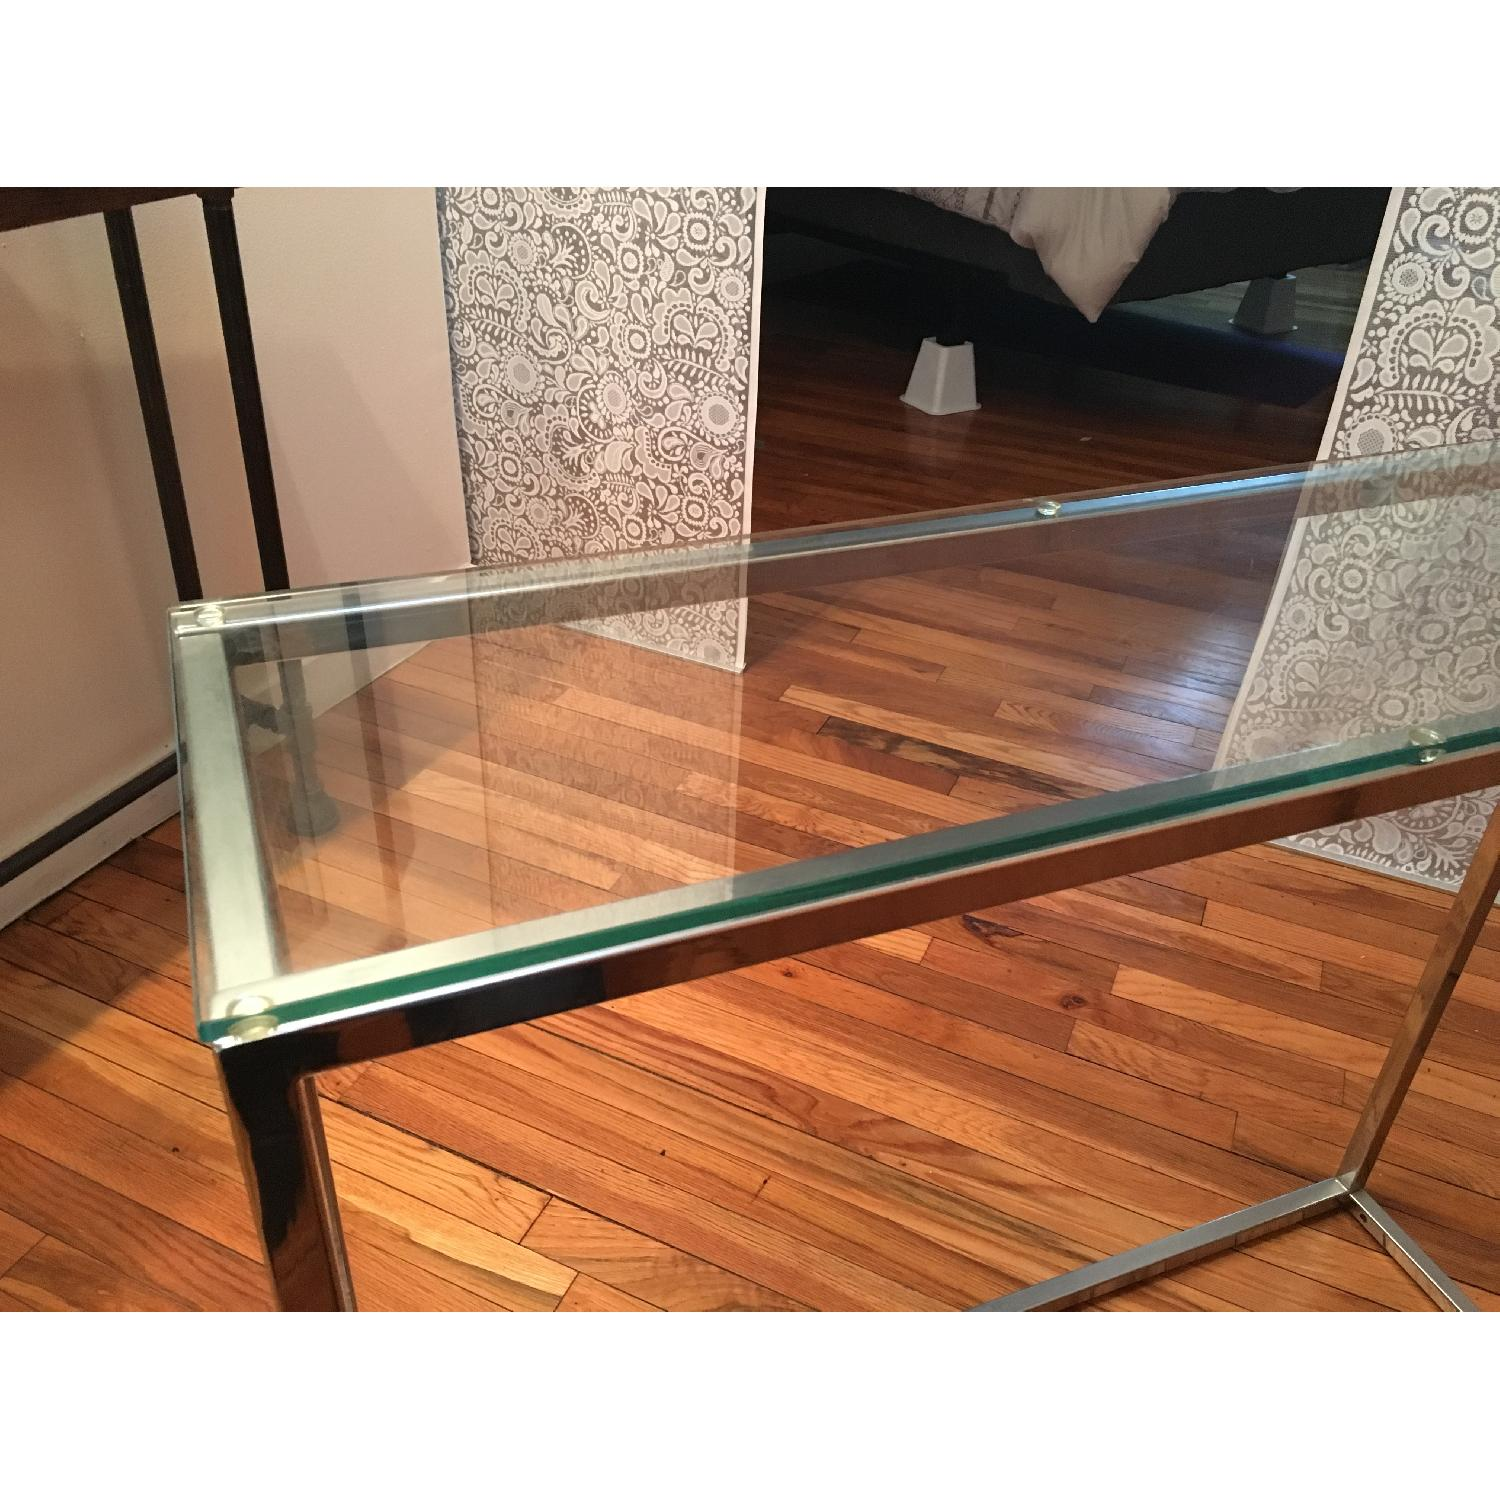 Crate & Barrel Glass Side Table - image-4